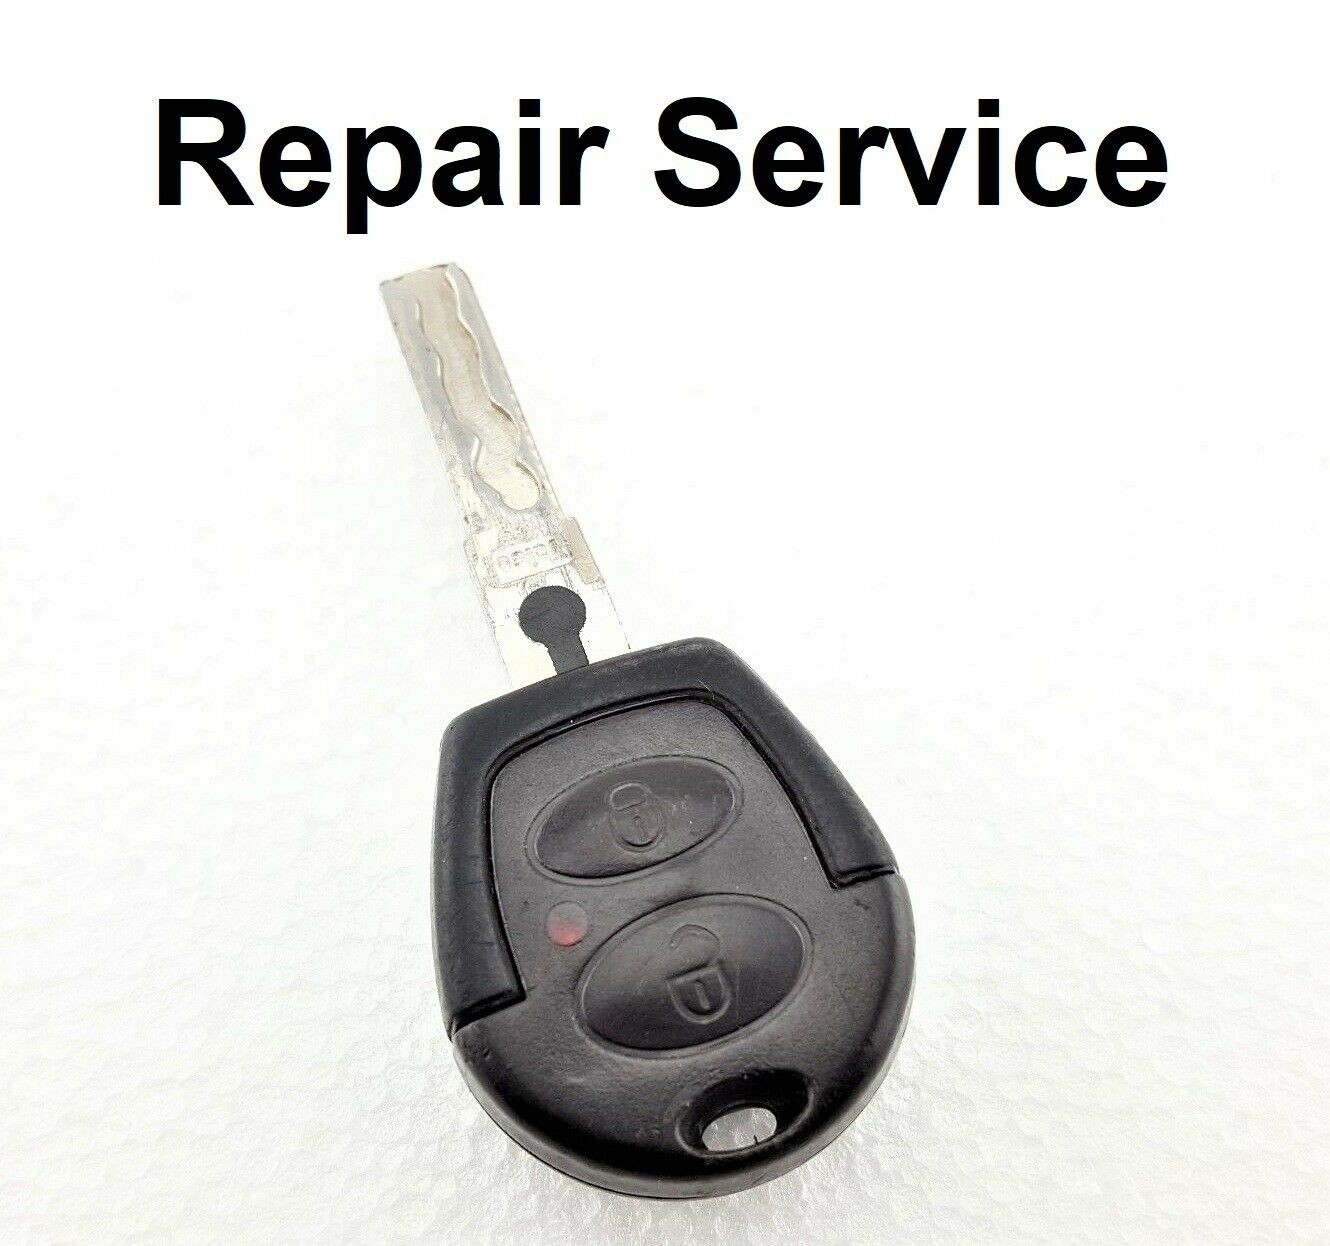 Repair Service for VW Volkswagen Polo Golf Passat 2 Button Remote Key